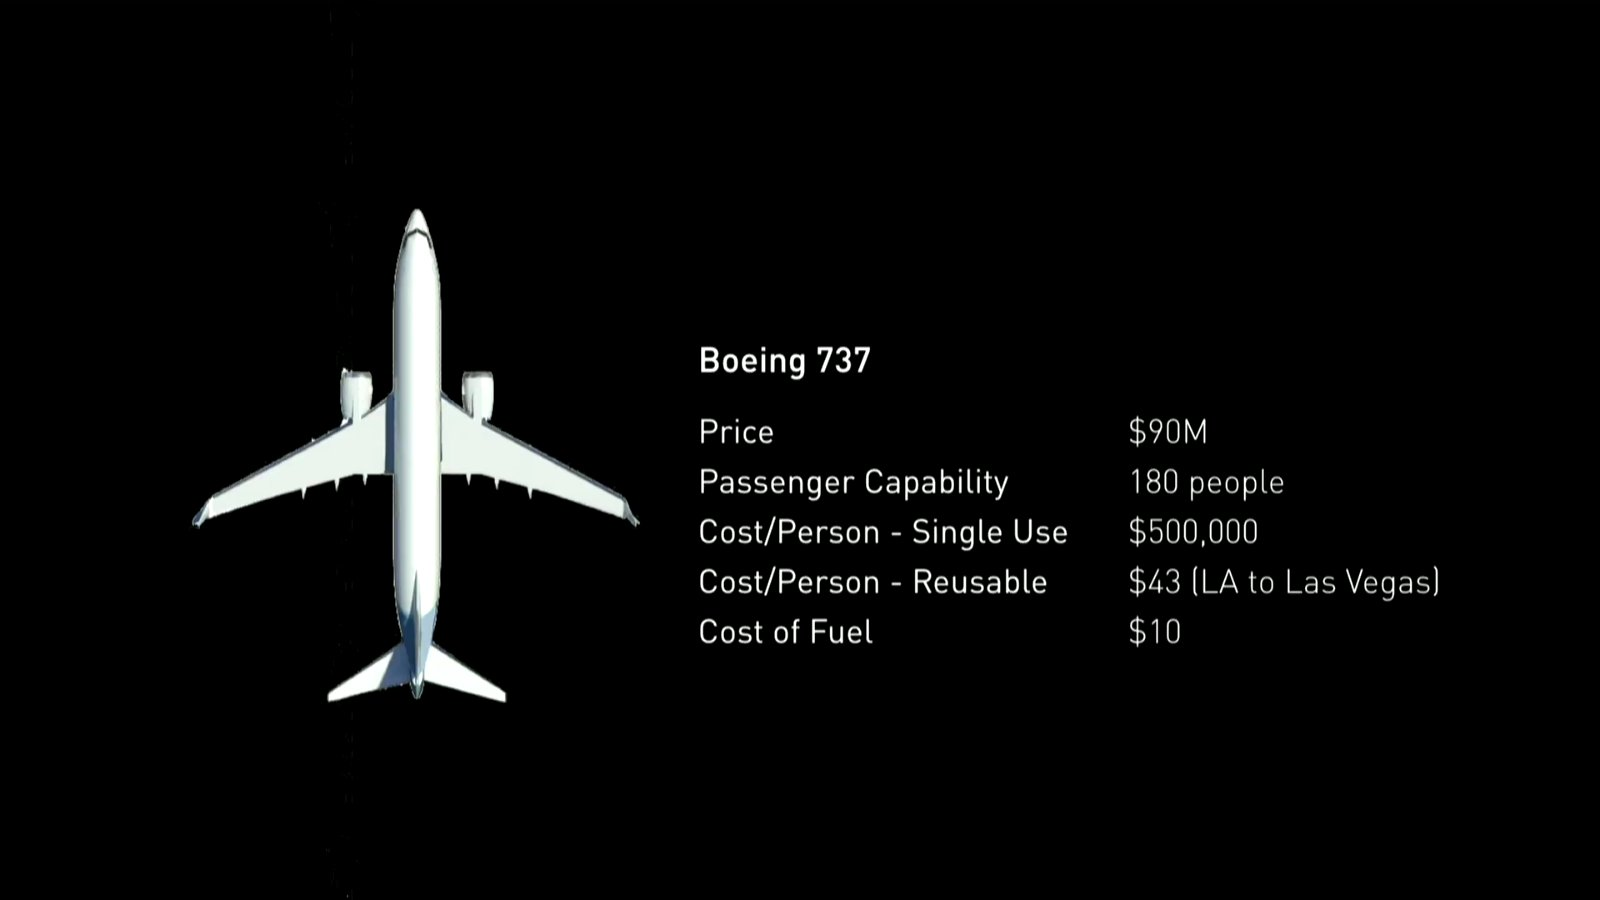 Reusability is the key to lowering the cost of transportation #IAC2016 https://t.co/7OkDbMQILr